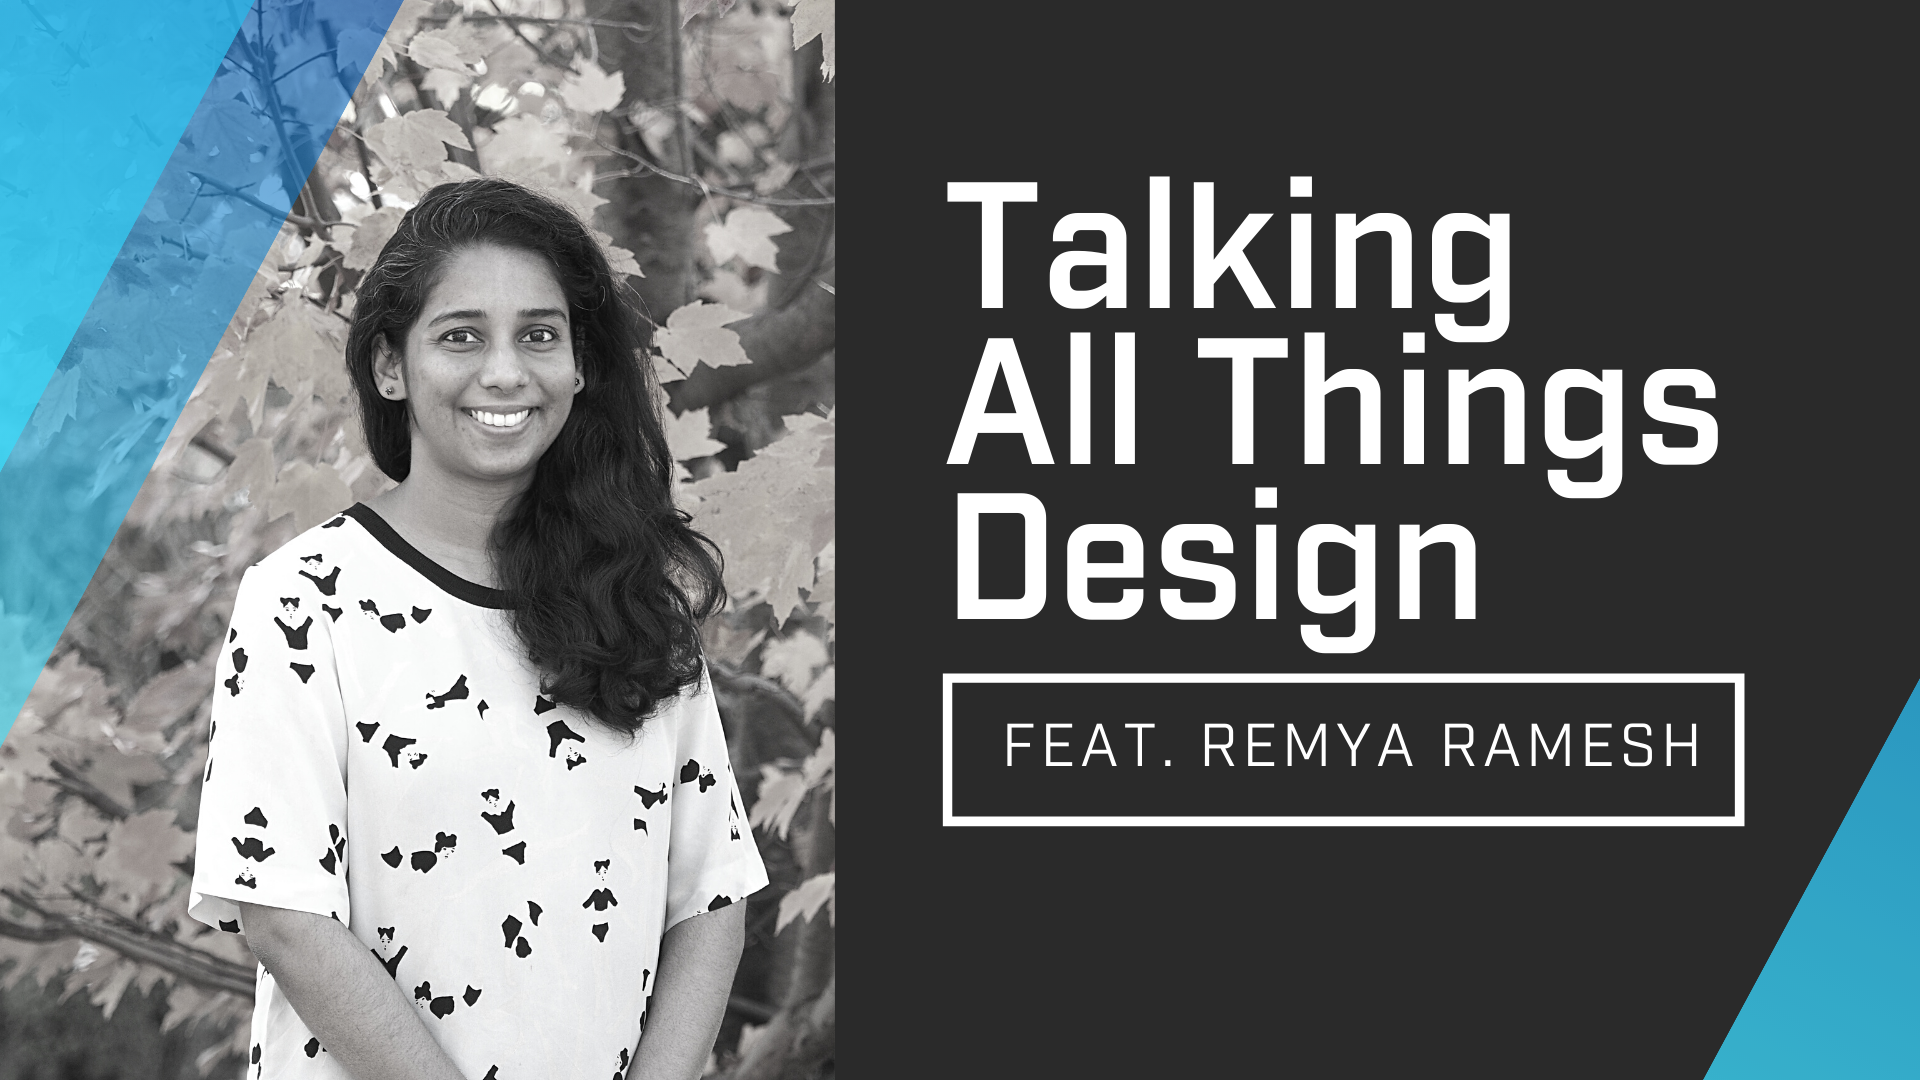 Talking All Things Design With Remya Ramesh Episode Cover Image